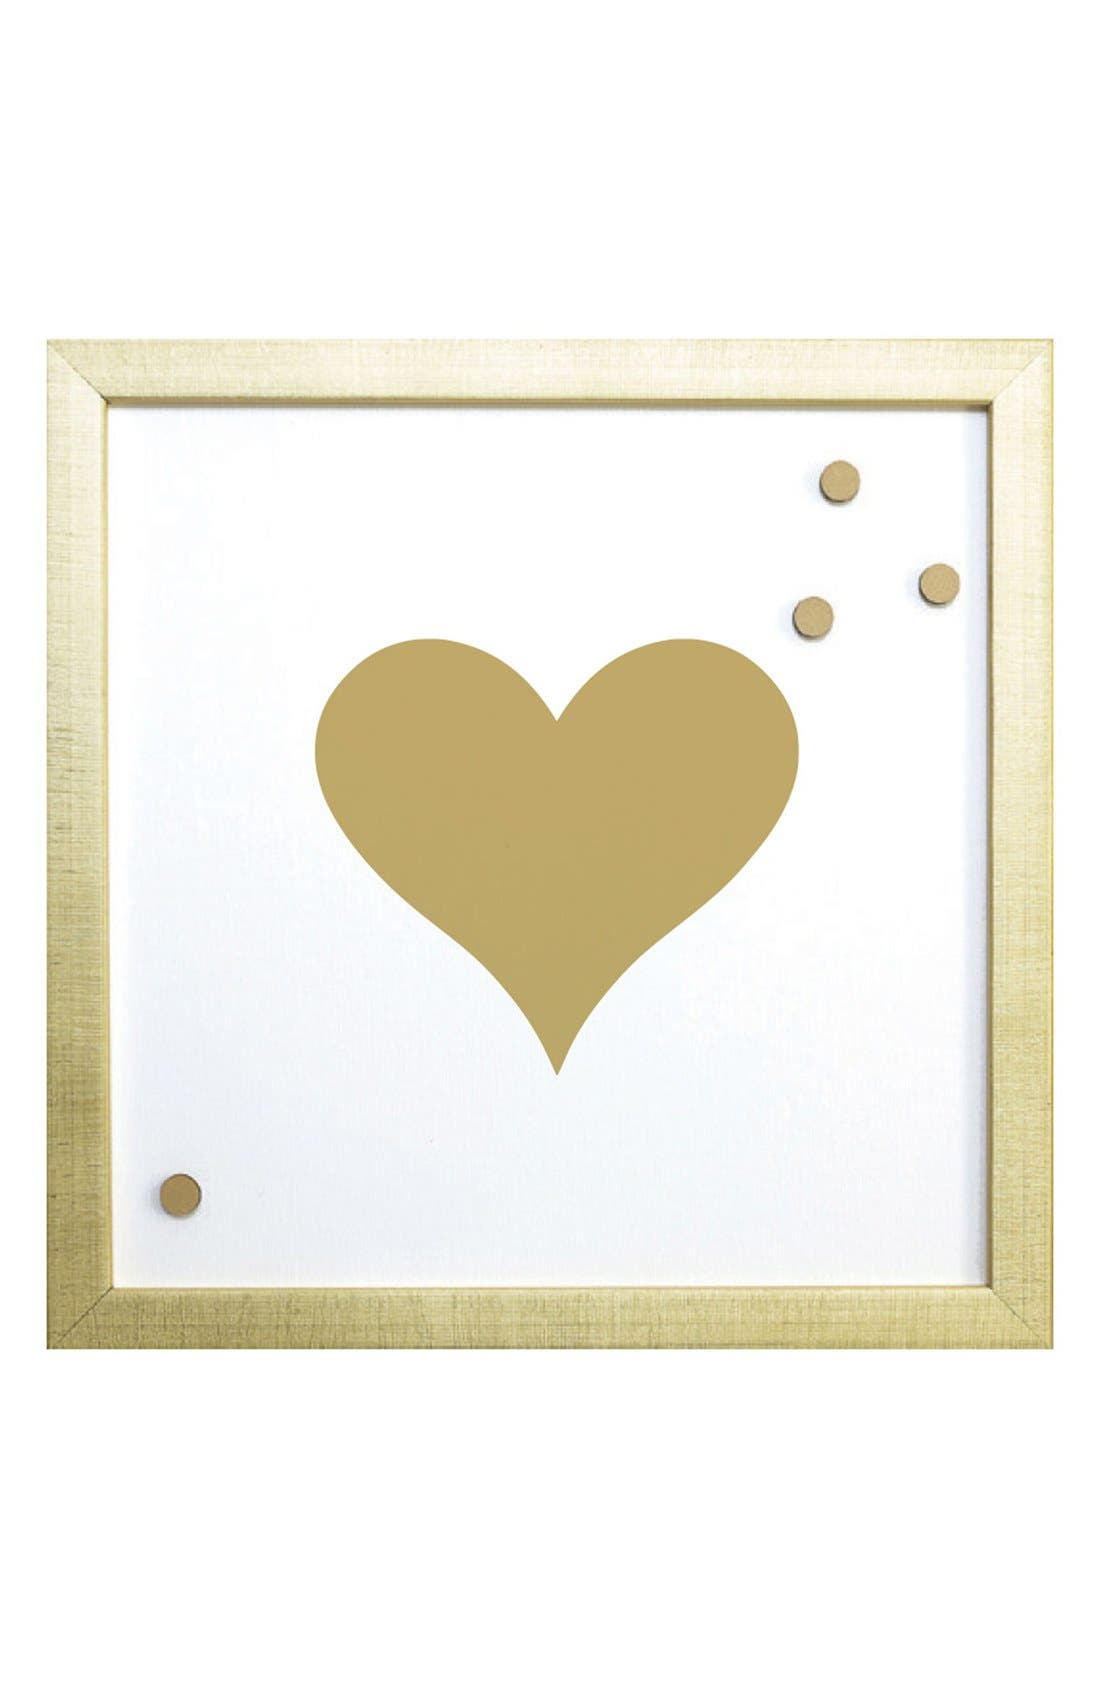 'Heart' Magnet Board,                             Main thumbnail 1, color,                             710